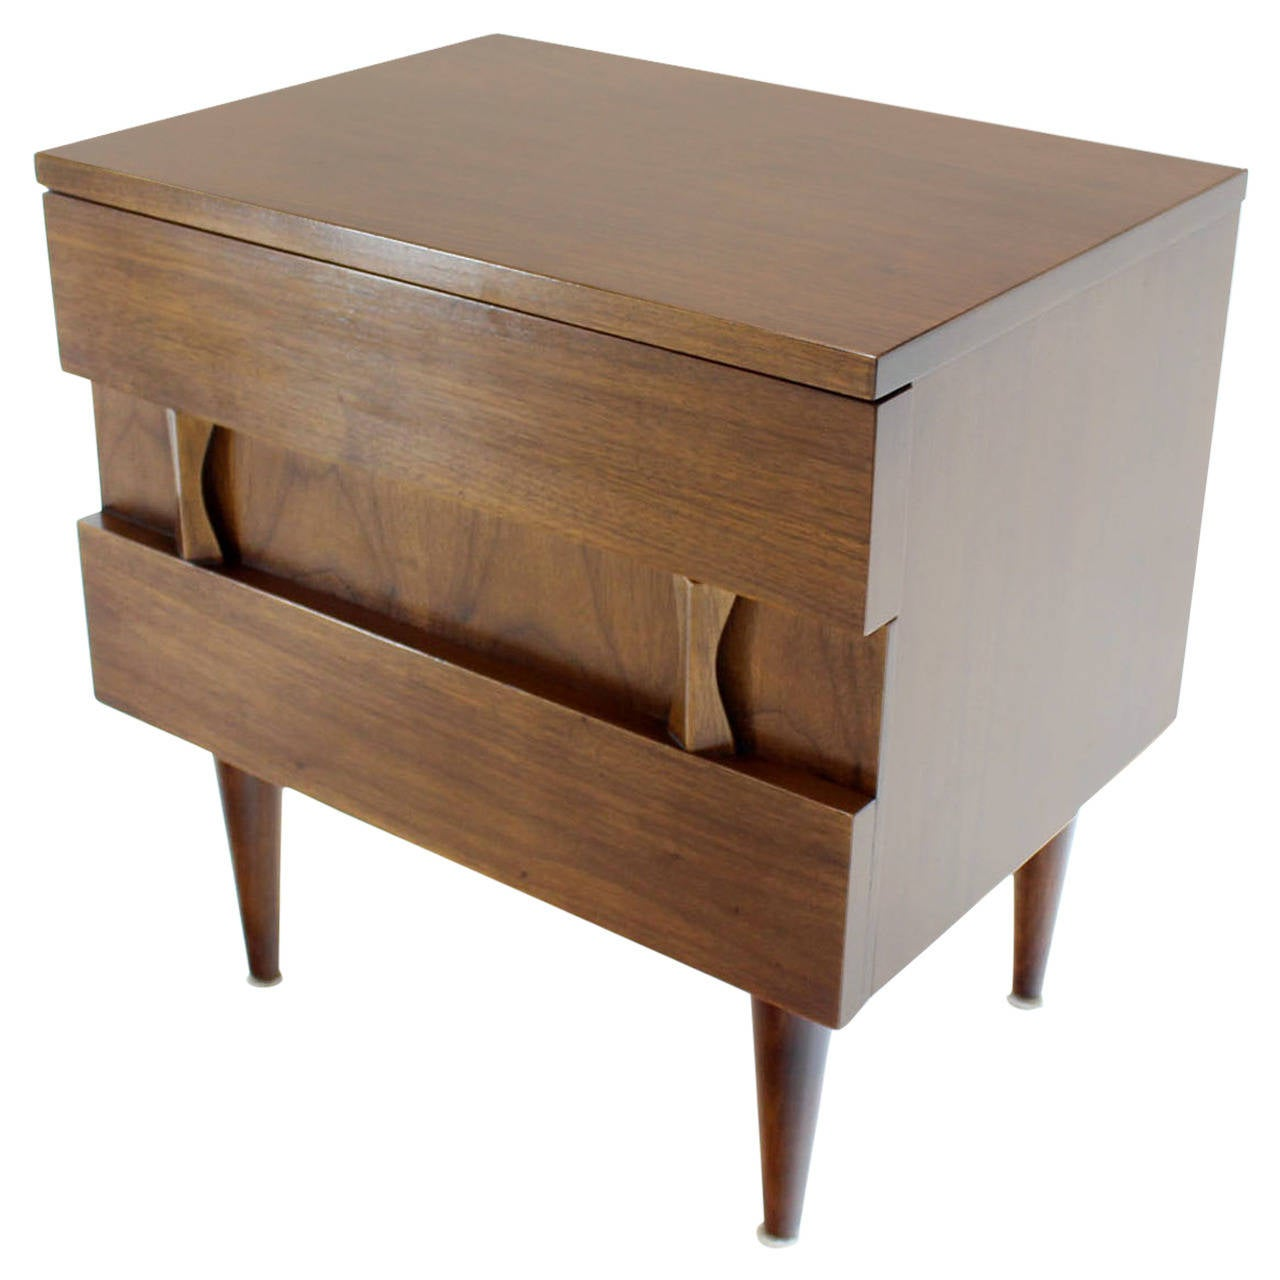 Danish Mid-Century Modern Walnut End Table or Night Stand